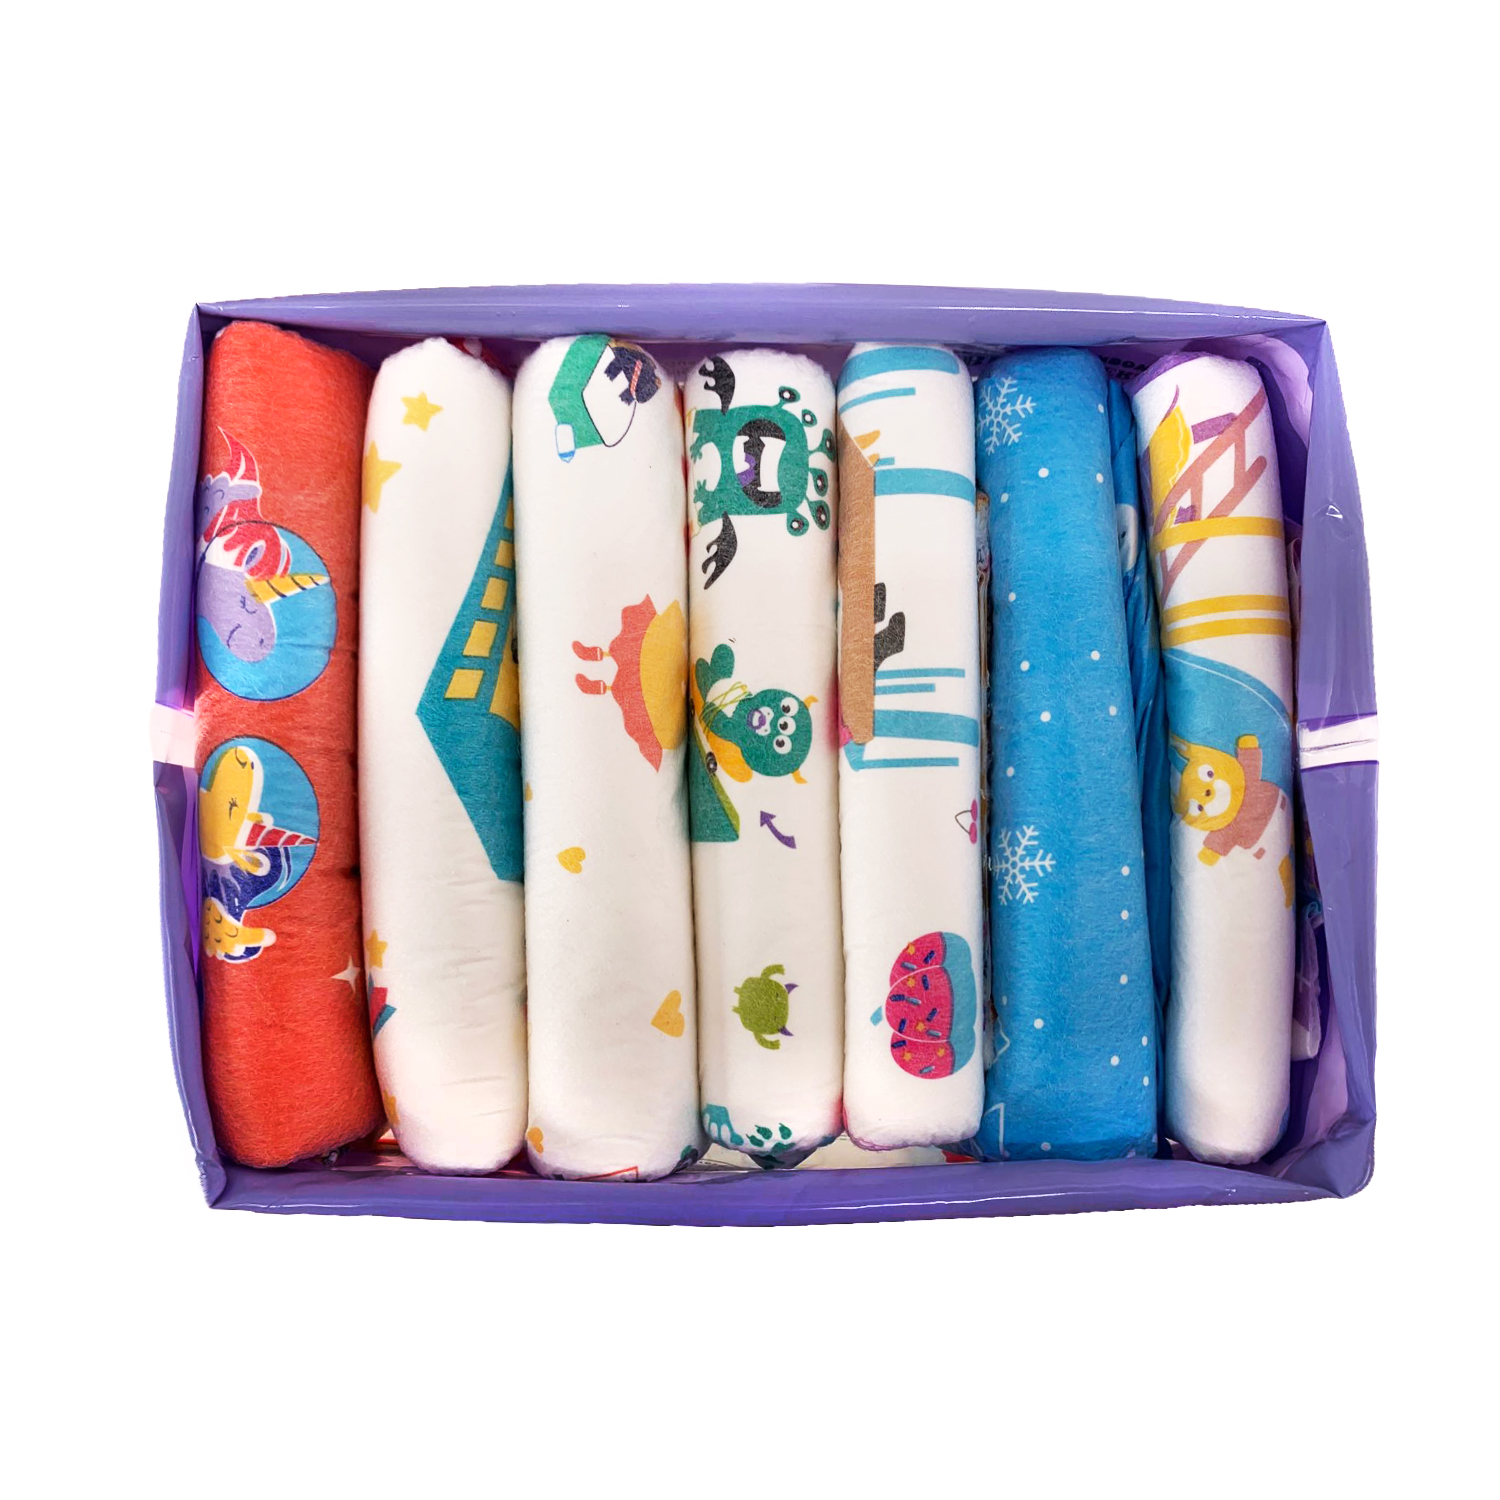 TEN@NIGHT Rainbow Weekly Diaper ABDL Extra Large Size Adult Diaper Stretchy Waist DDLG Diaper Dummy Dom Different 7pcs In A Pack